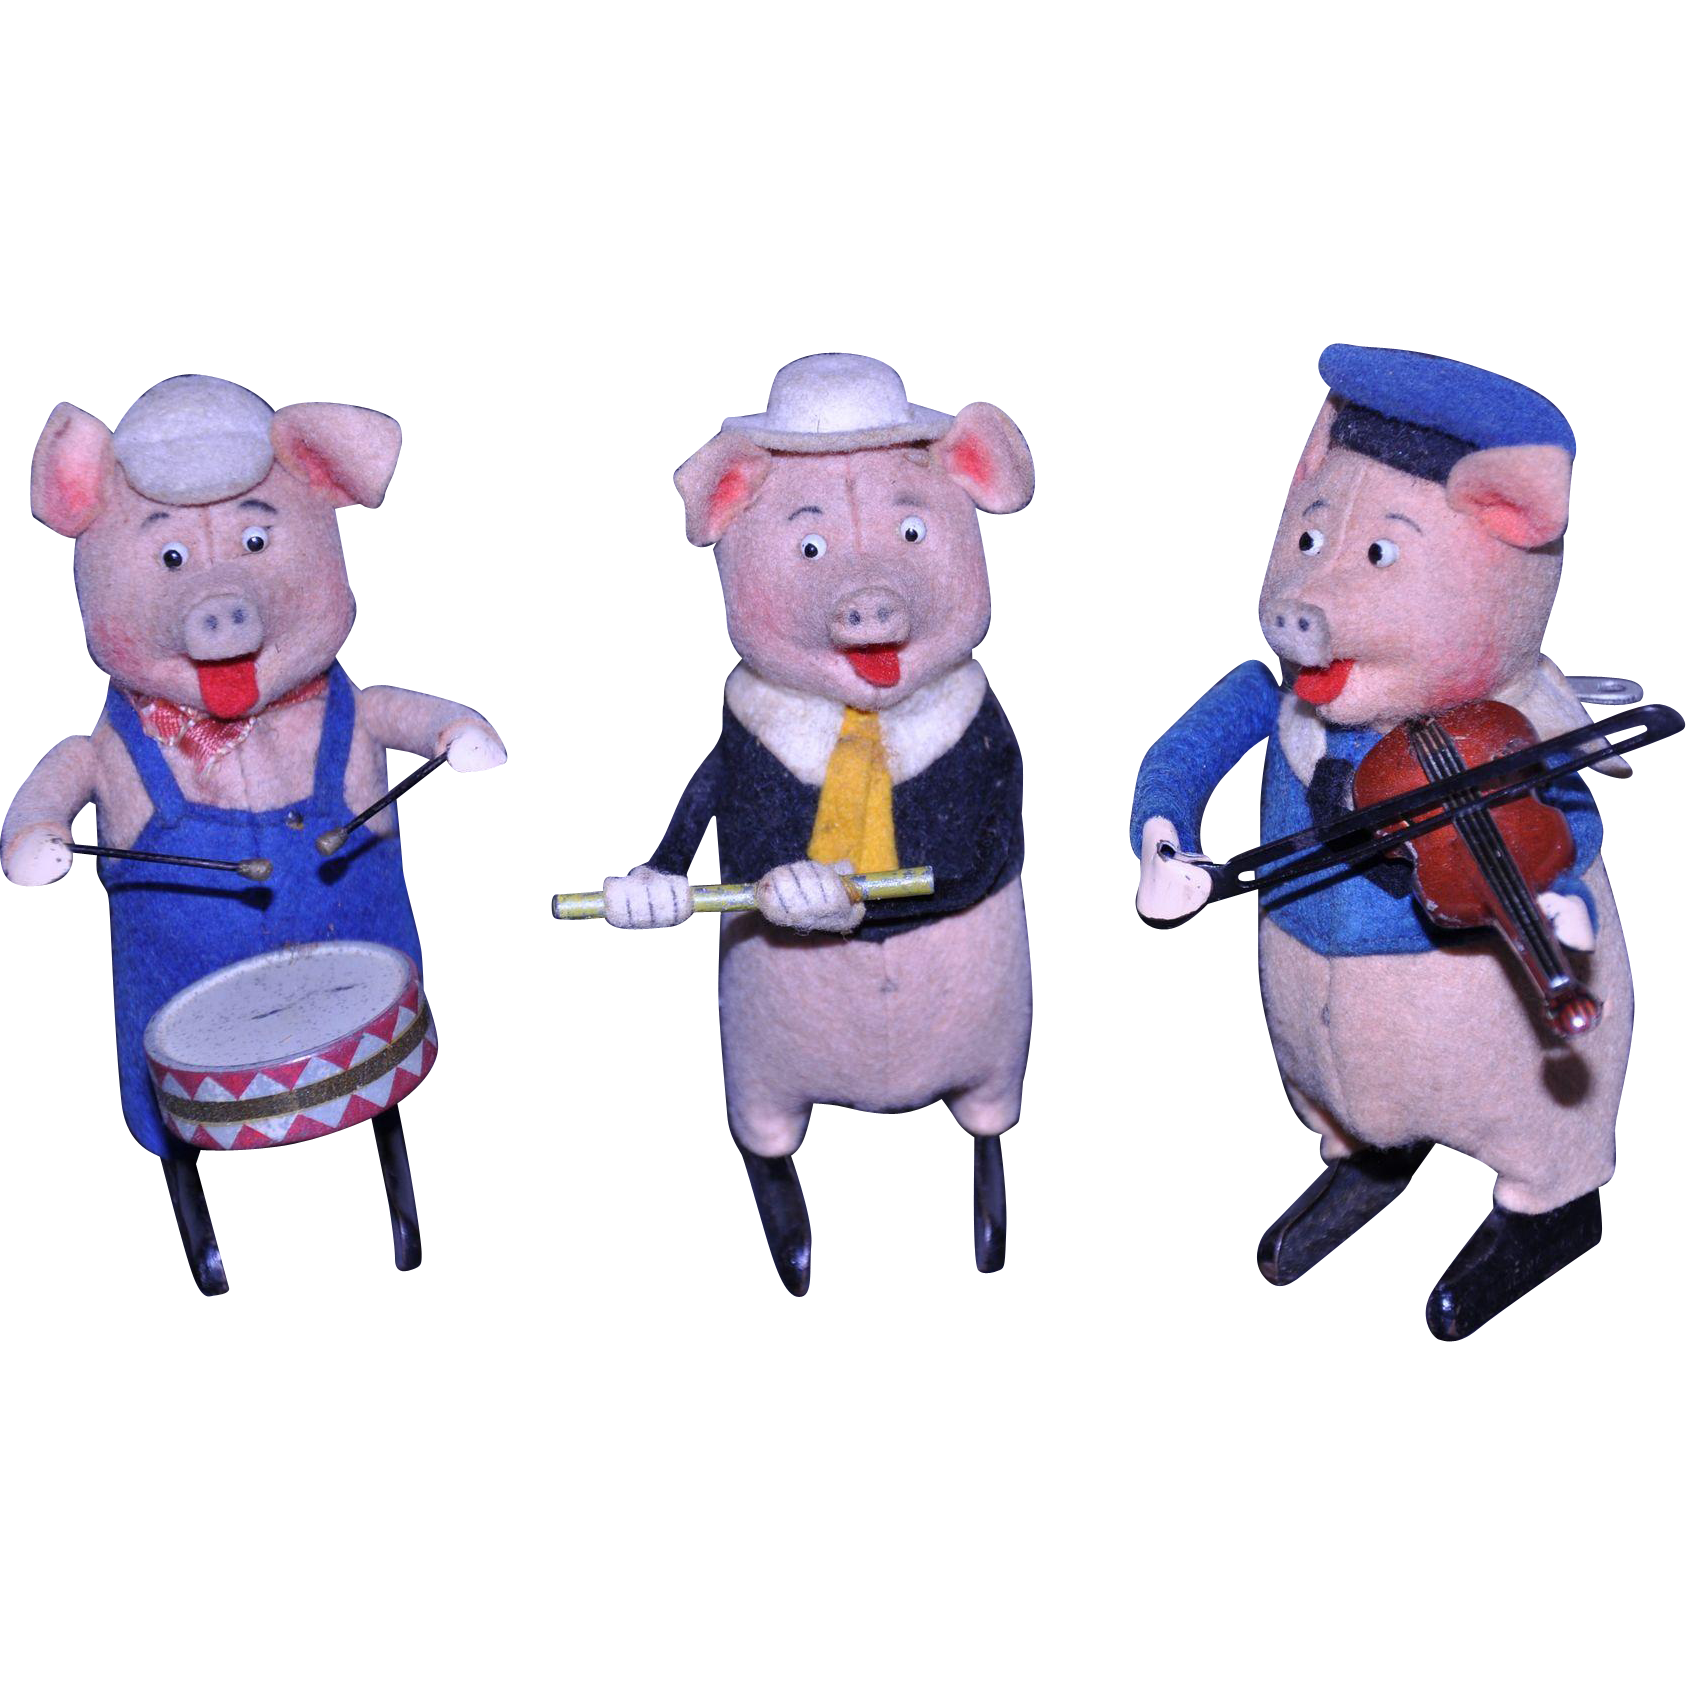 Schuco Disney German Three Little Pigs wind up toys 1930 from.